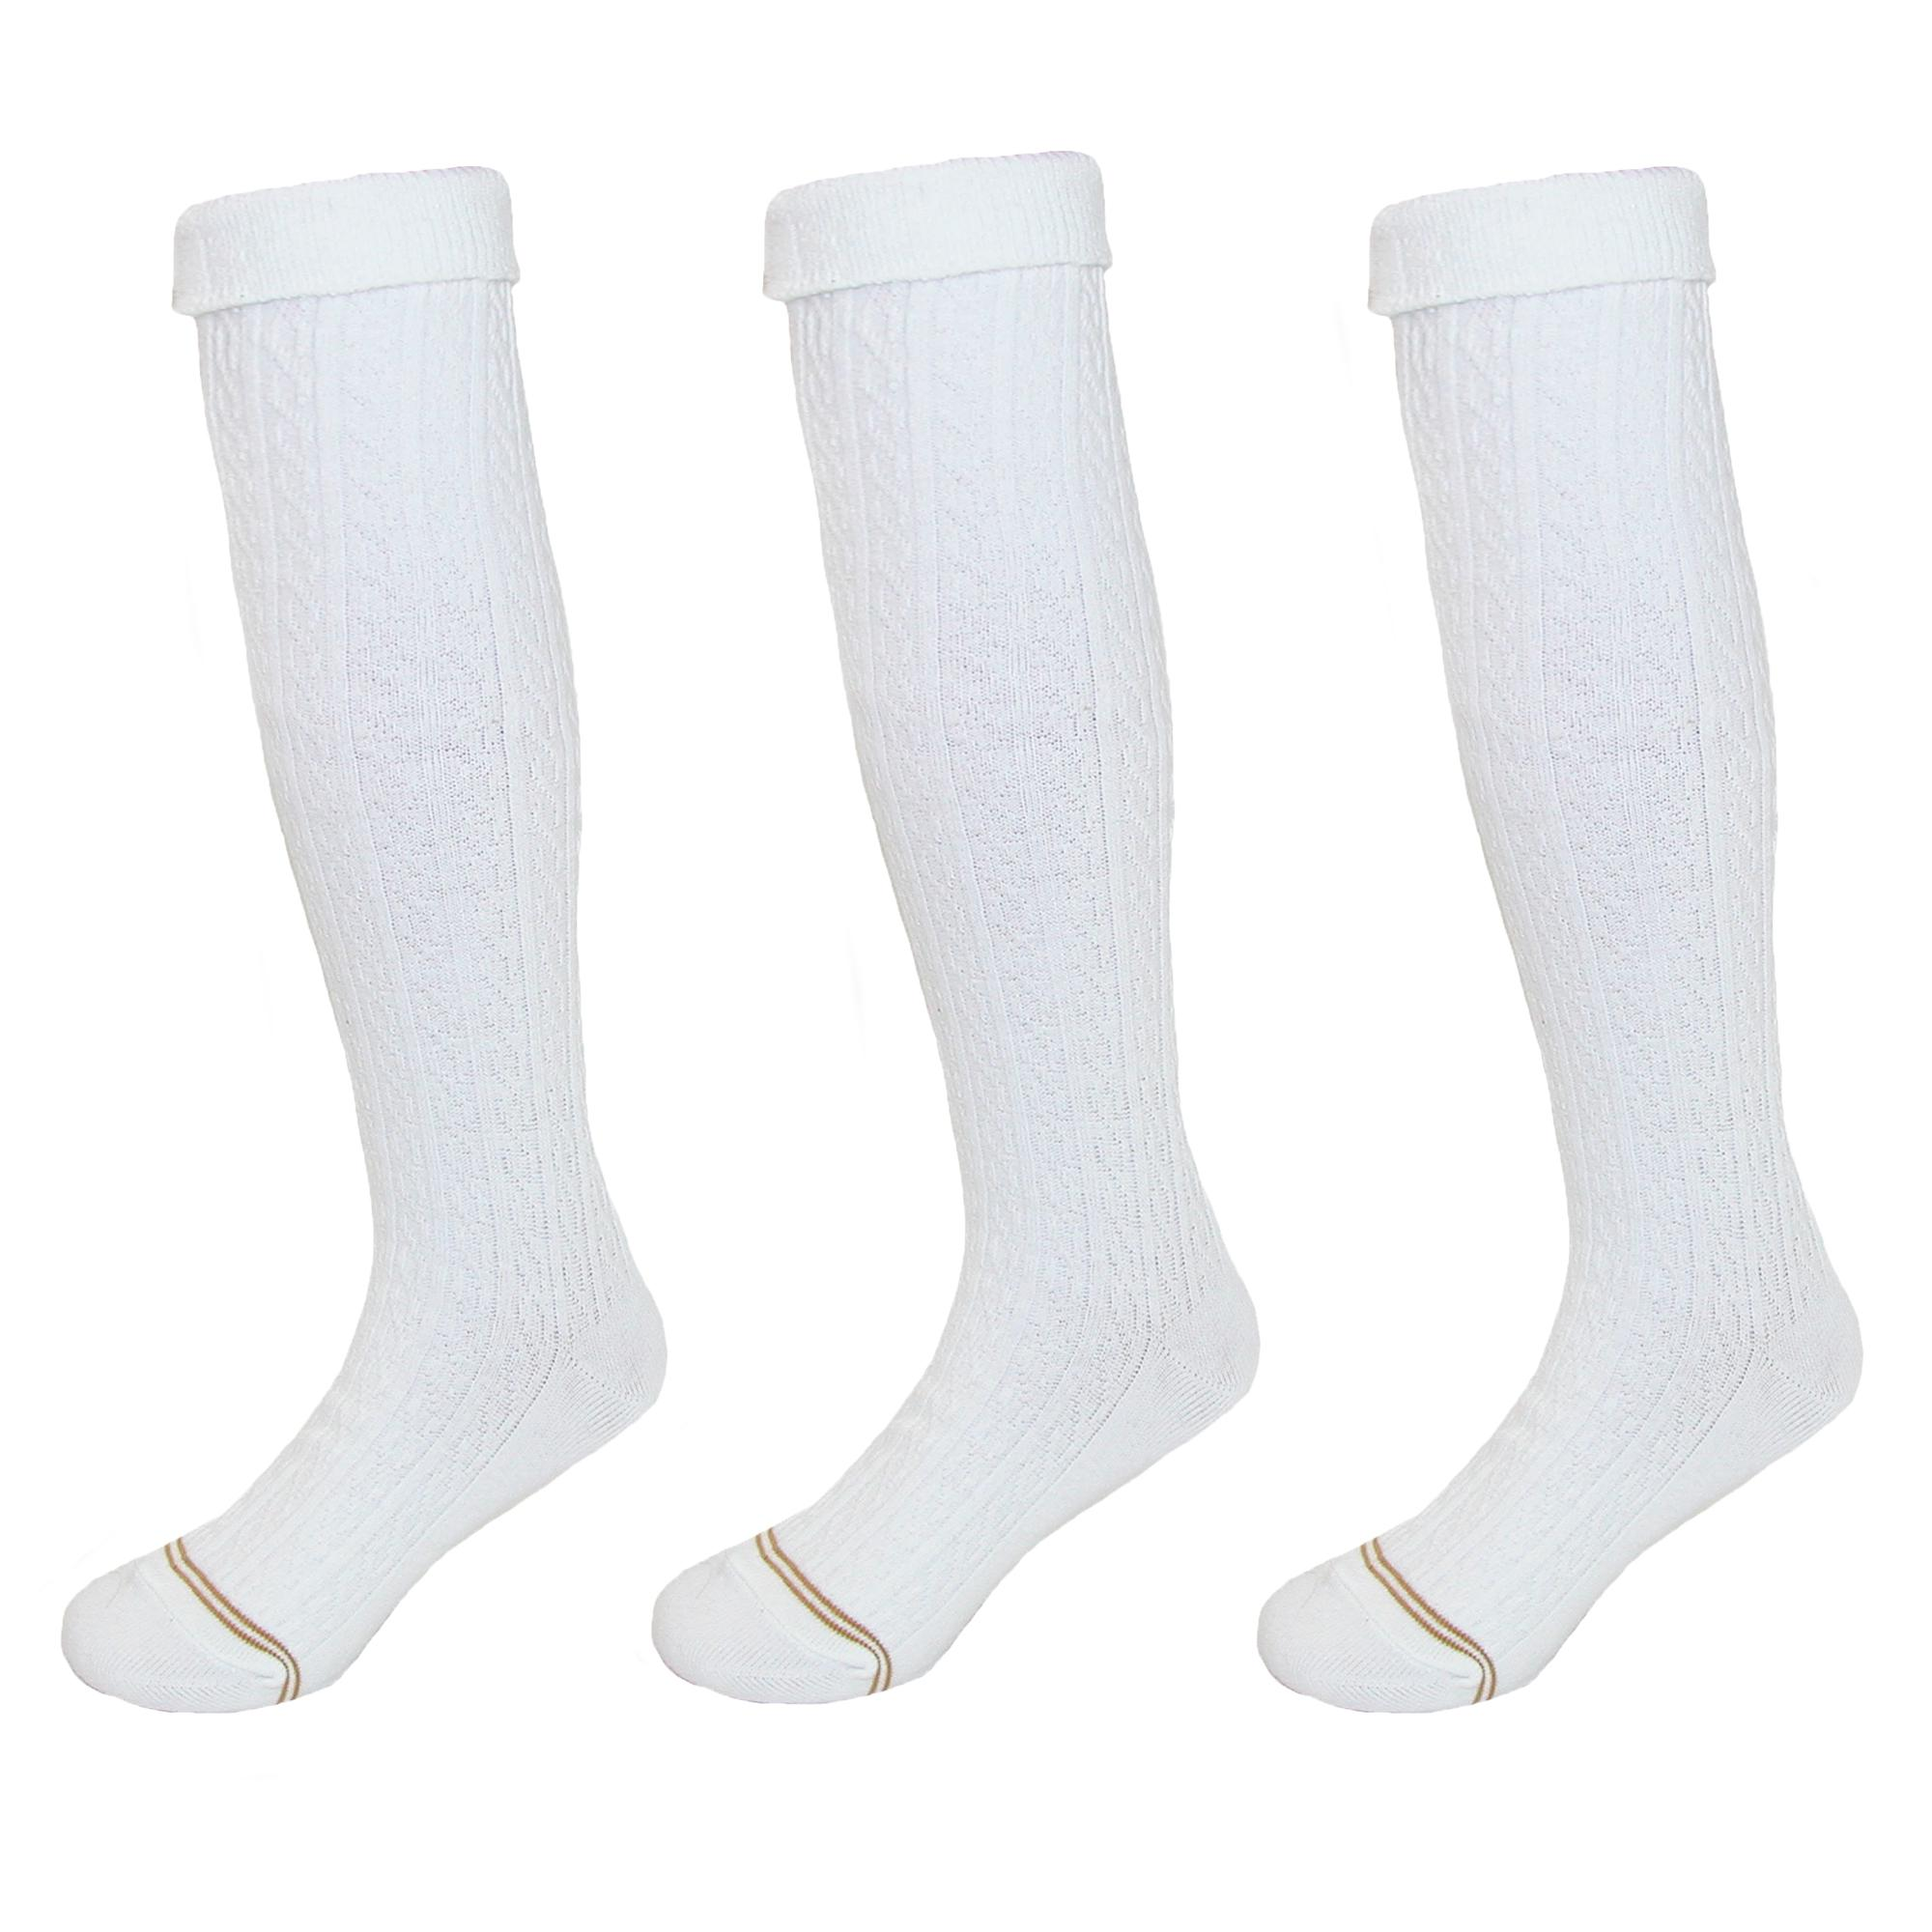 Gold Toe Girls' Cable Knit Knee High Uniform Socks (Pack of 3)